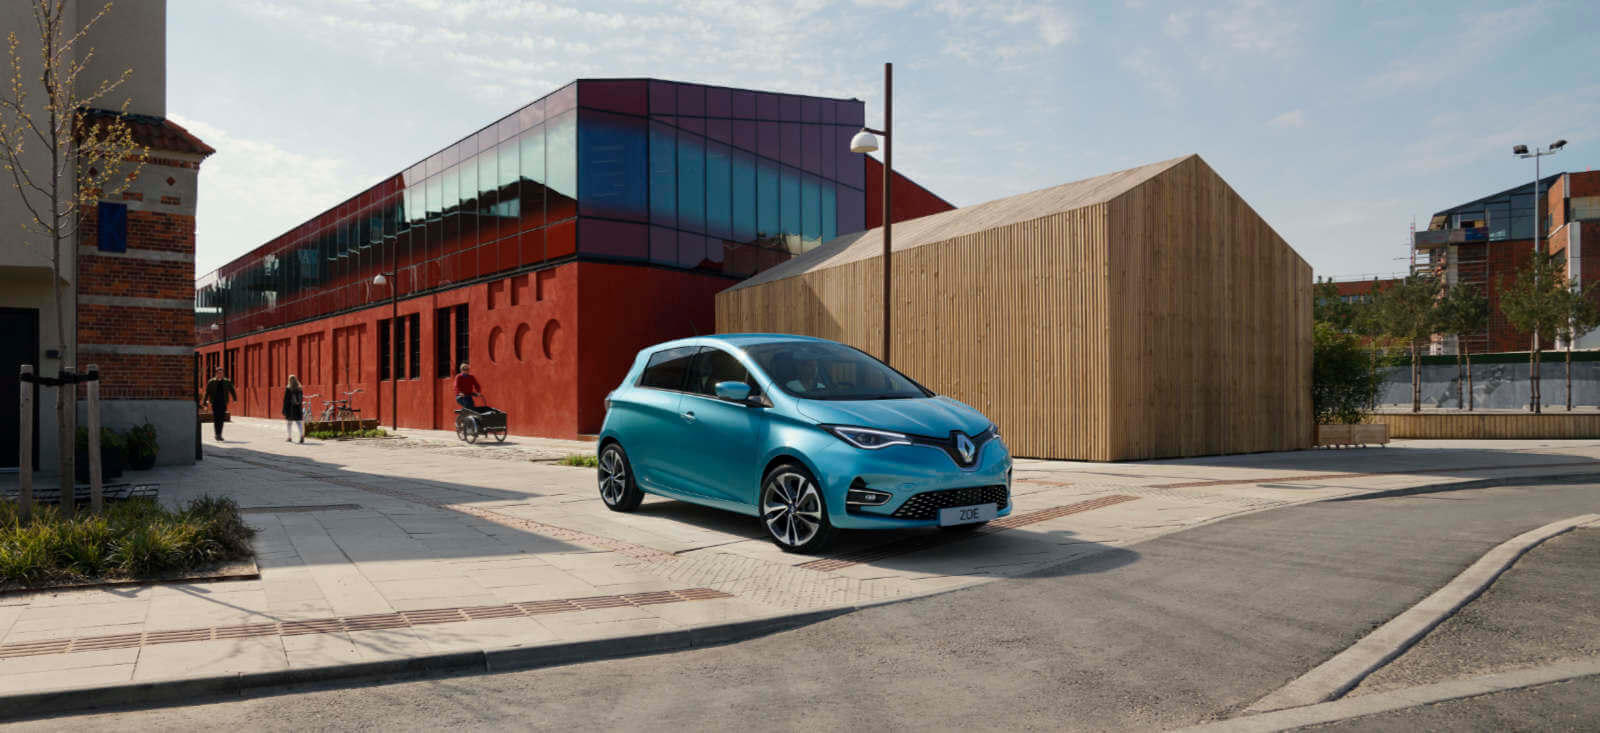 Renault Zoe city car